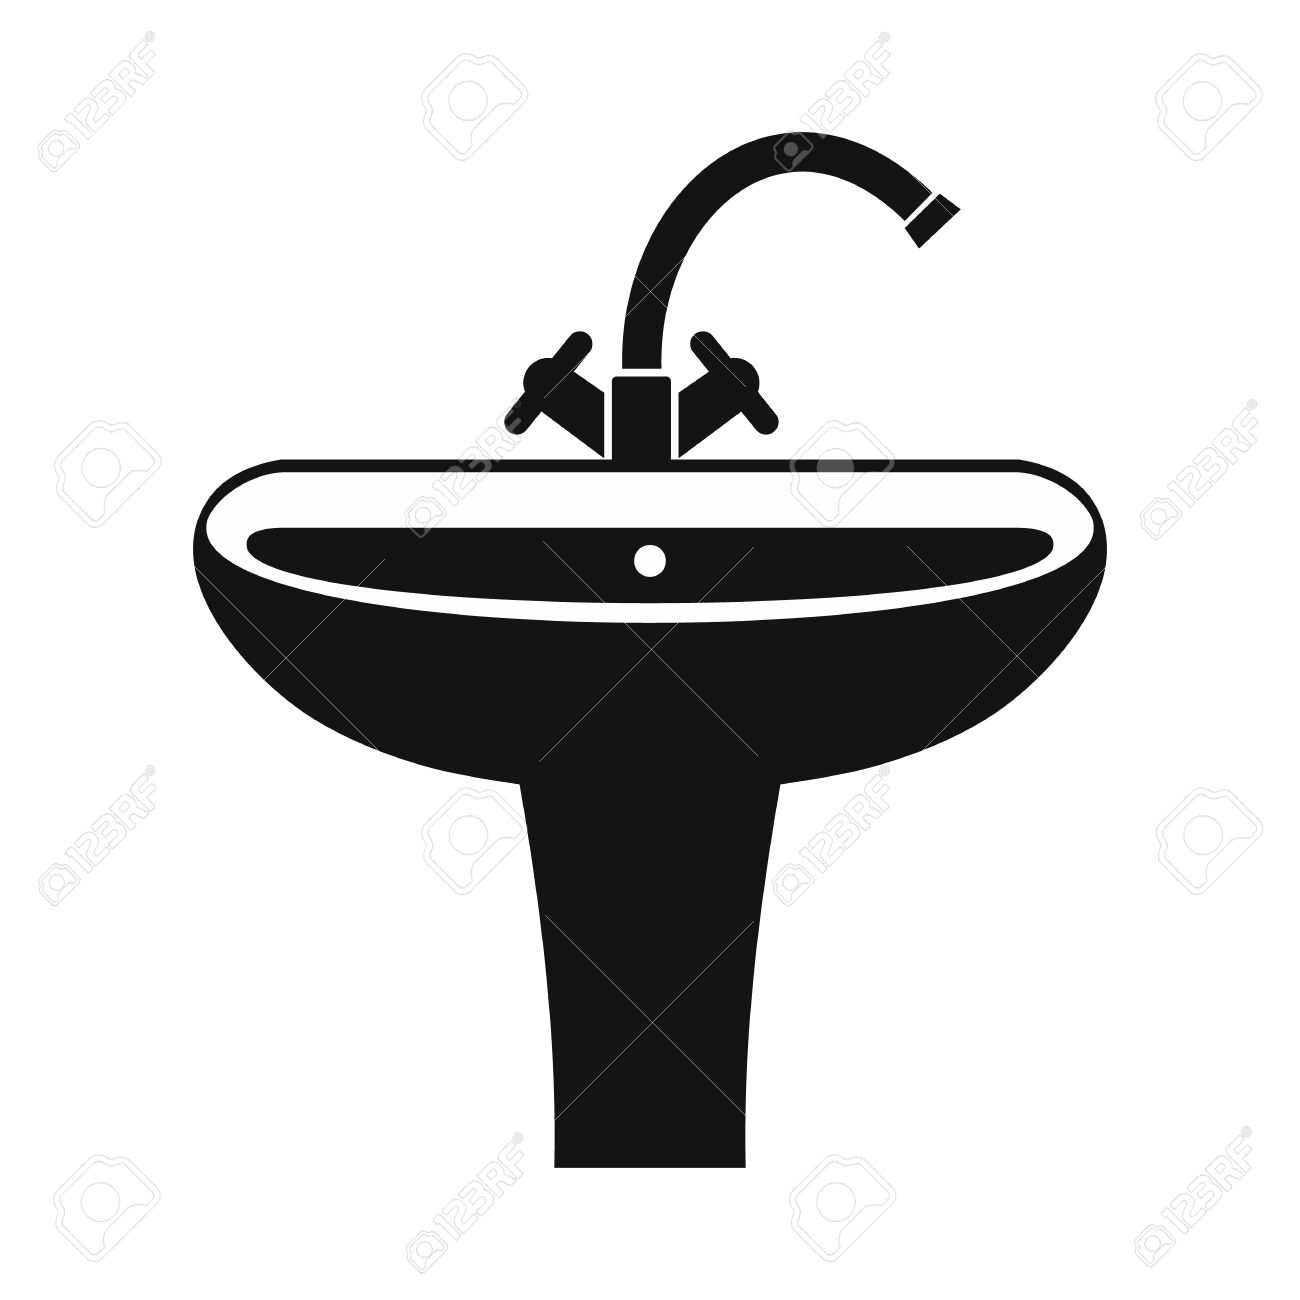 Washbasin Black Simple Icon On A White Background Royalty Free ... for bathroom sink clipart  110zmd